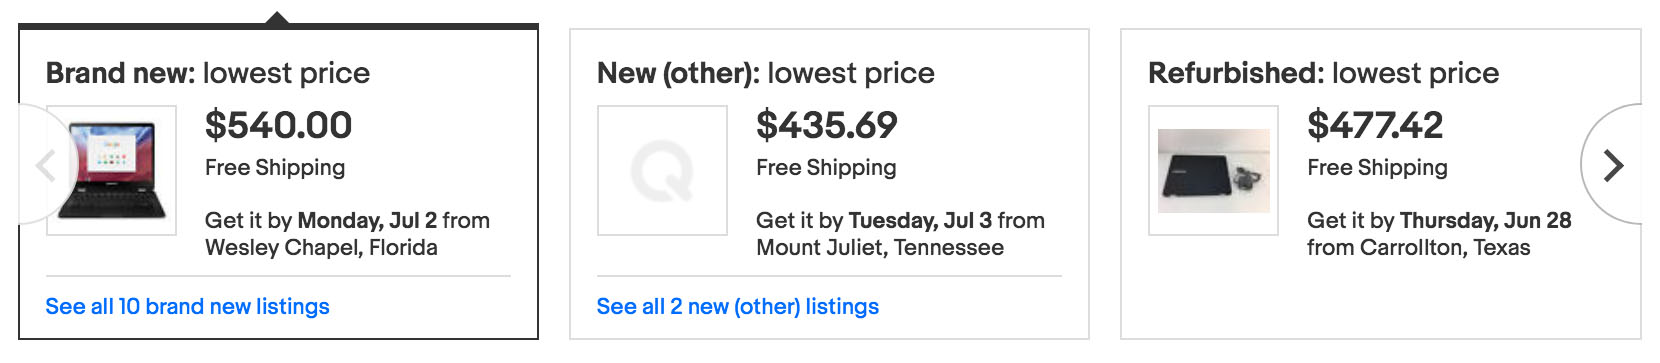 How To Rank Higher And Get Your Listings Seen In Ebay Search